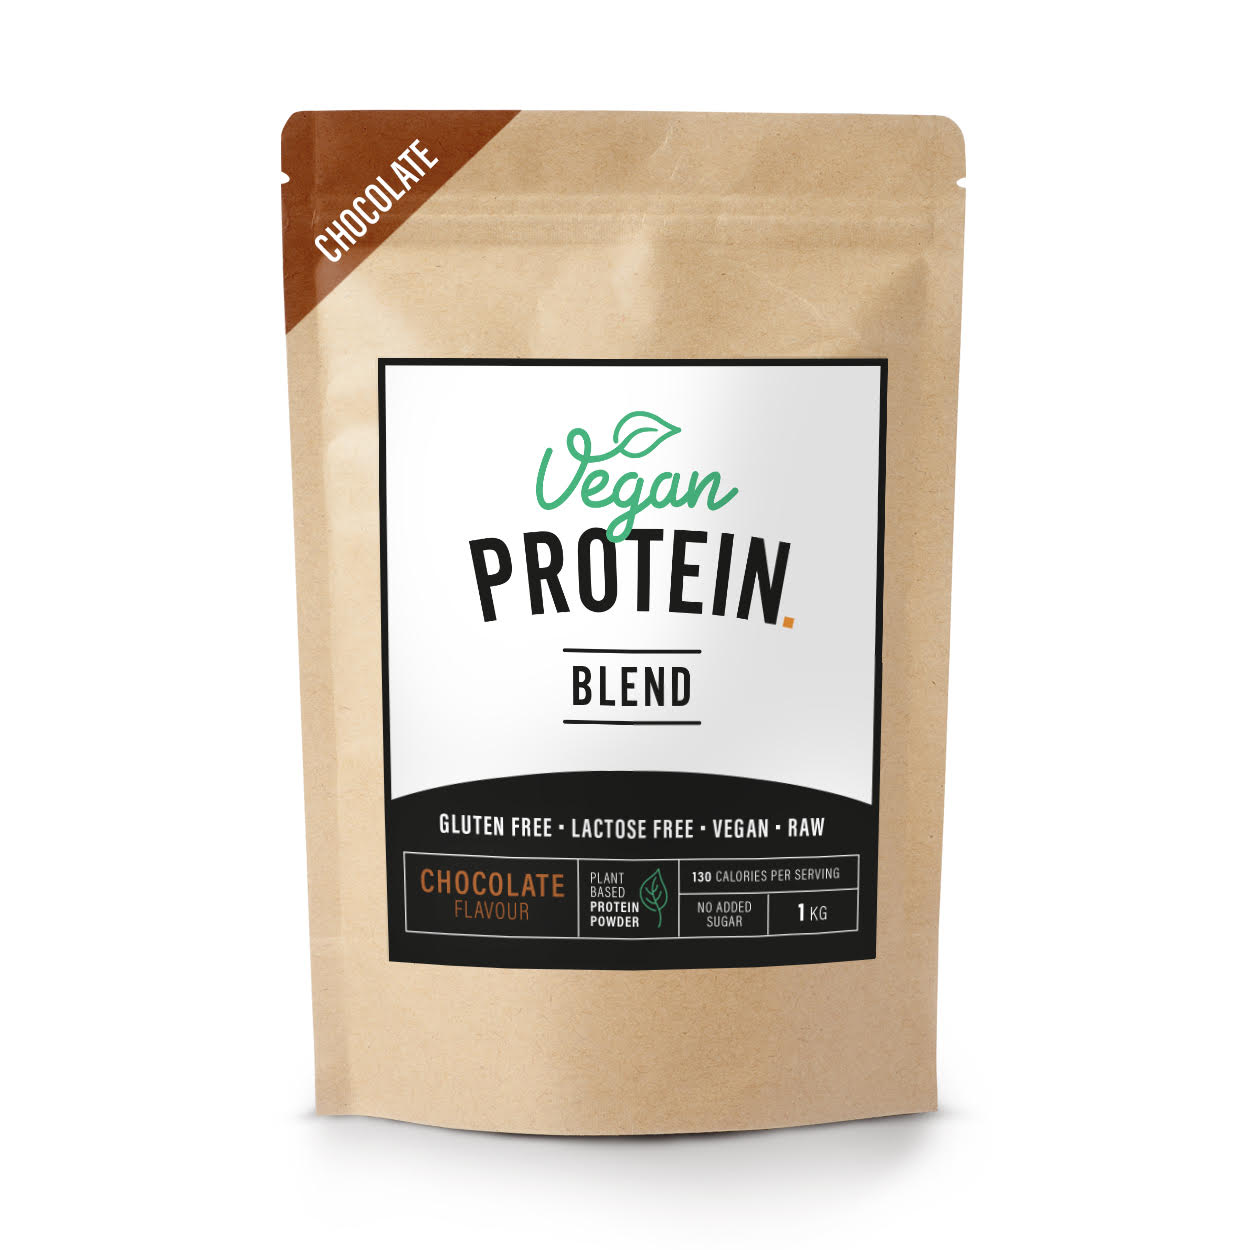 Vegan protein blend chocolate